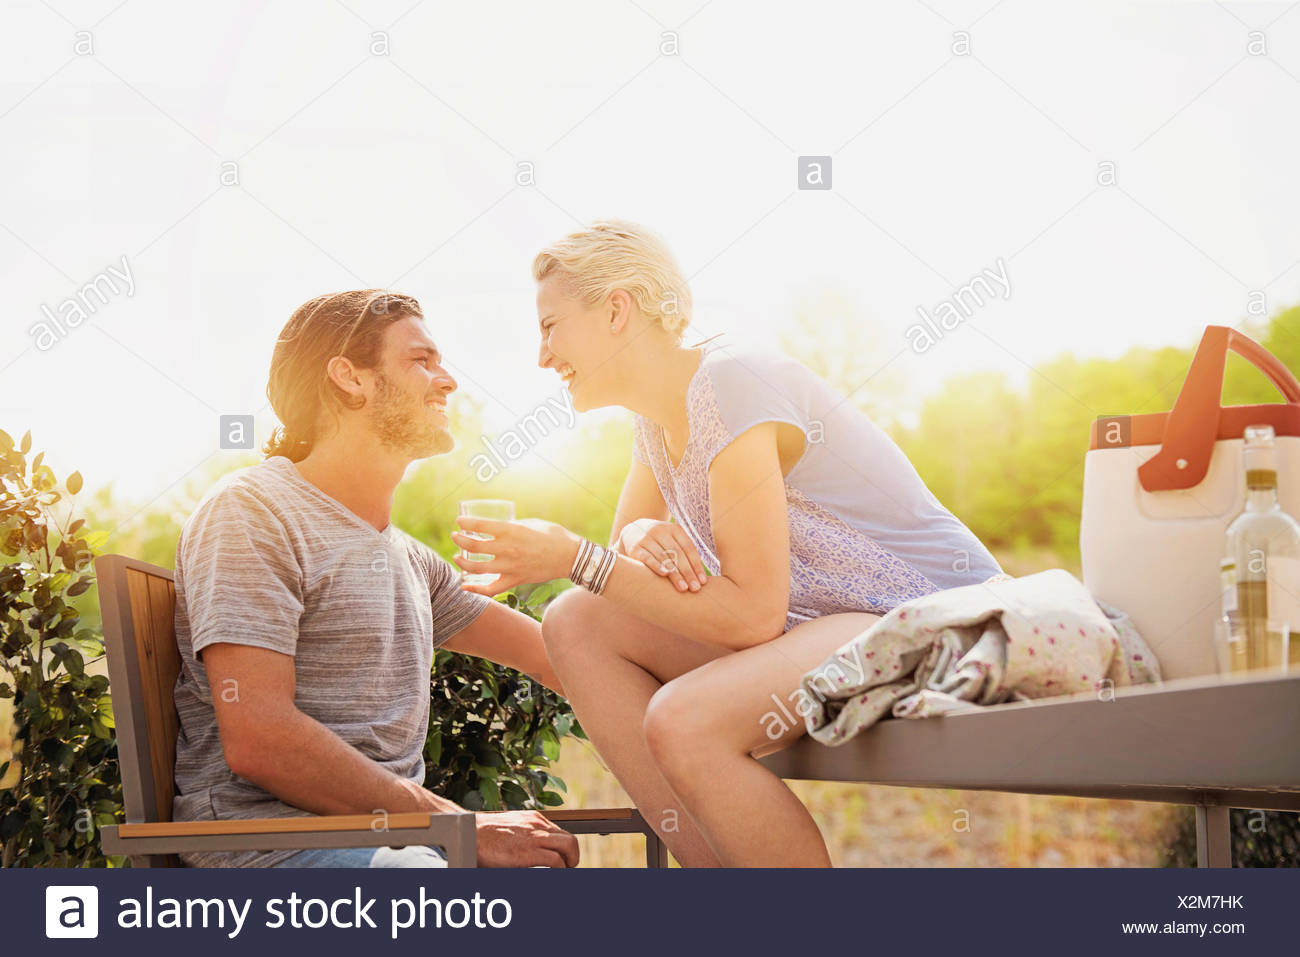 Couple laughing on rooftop Photo Stock